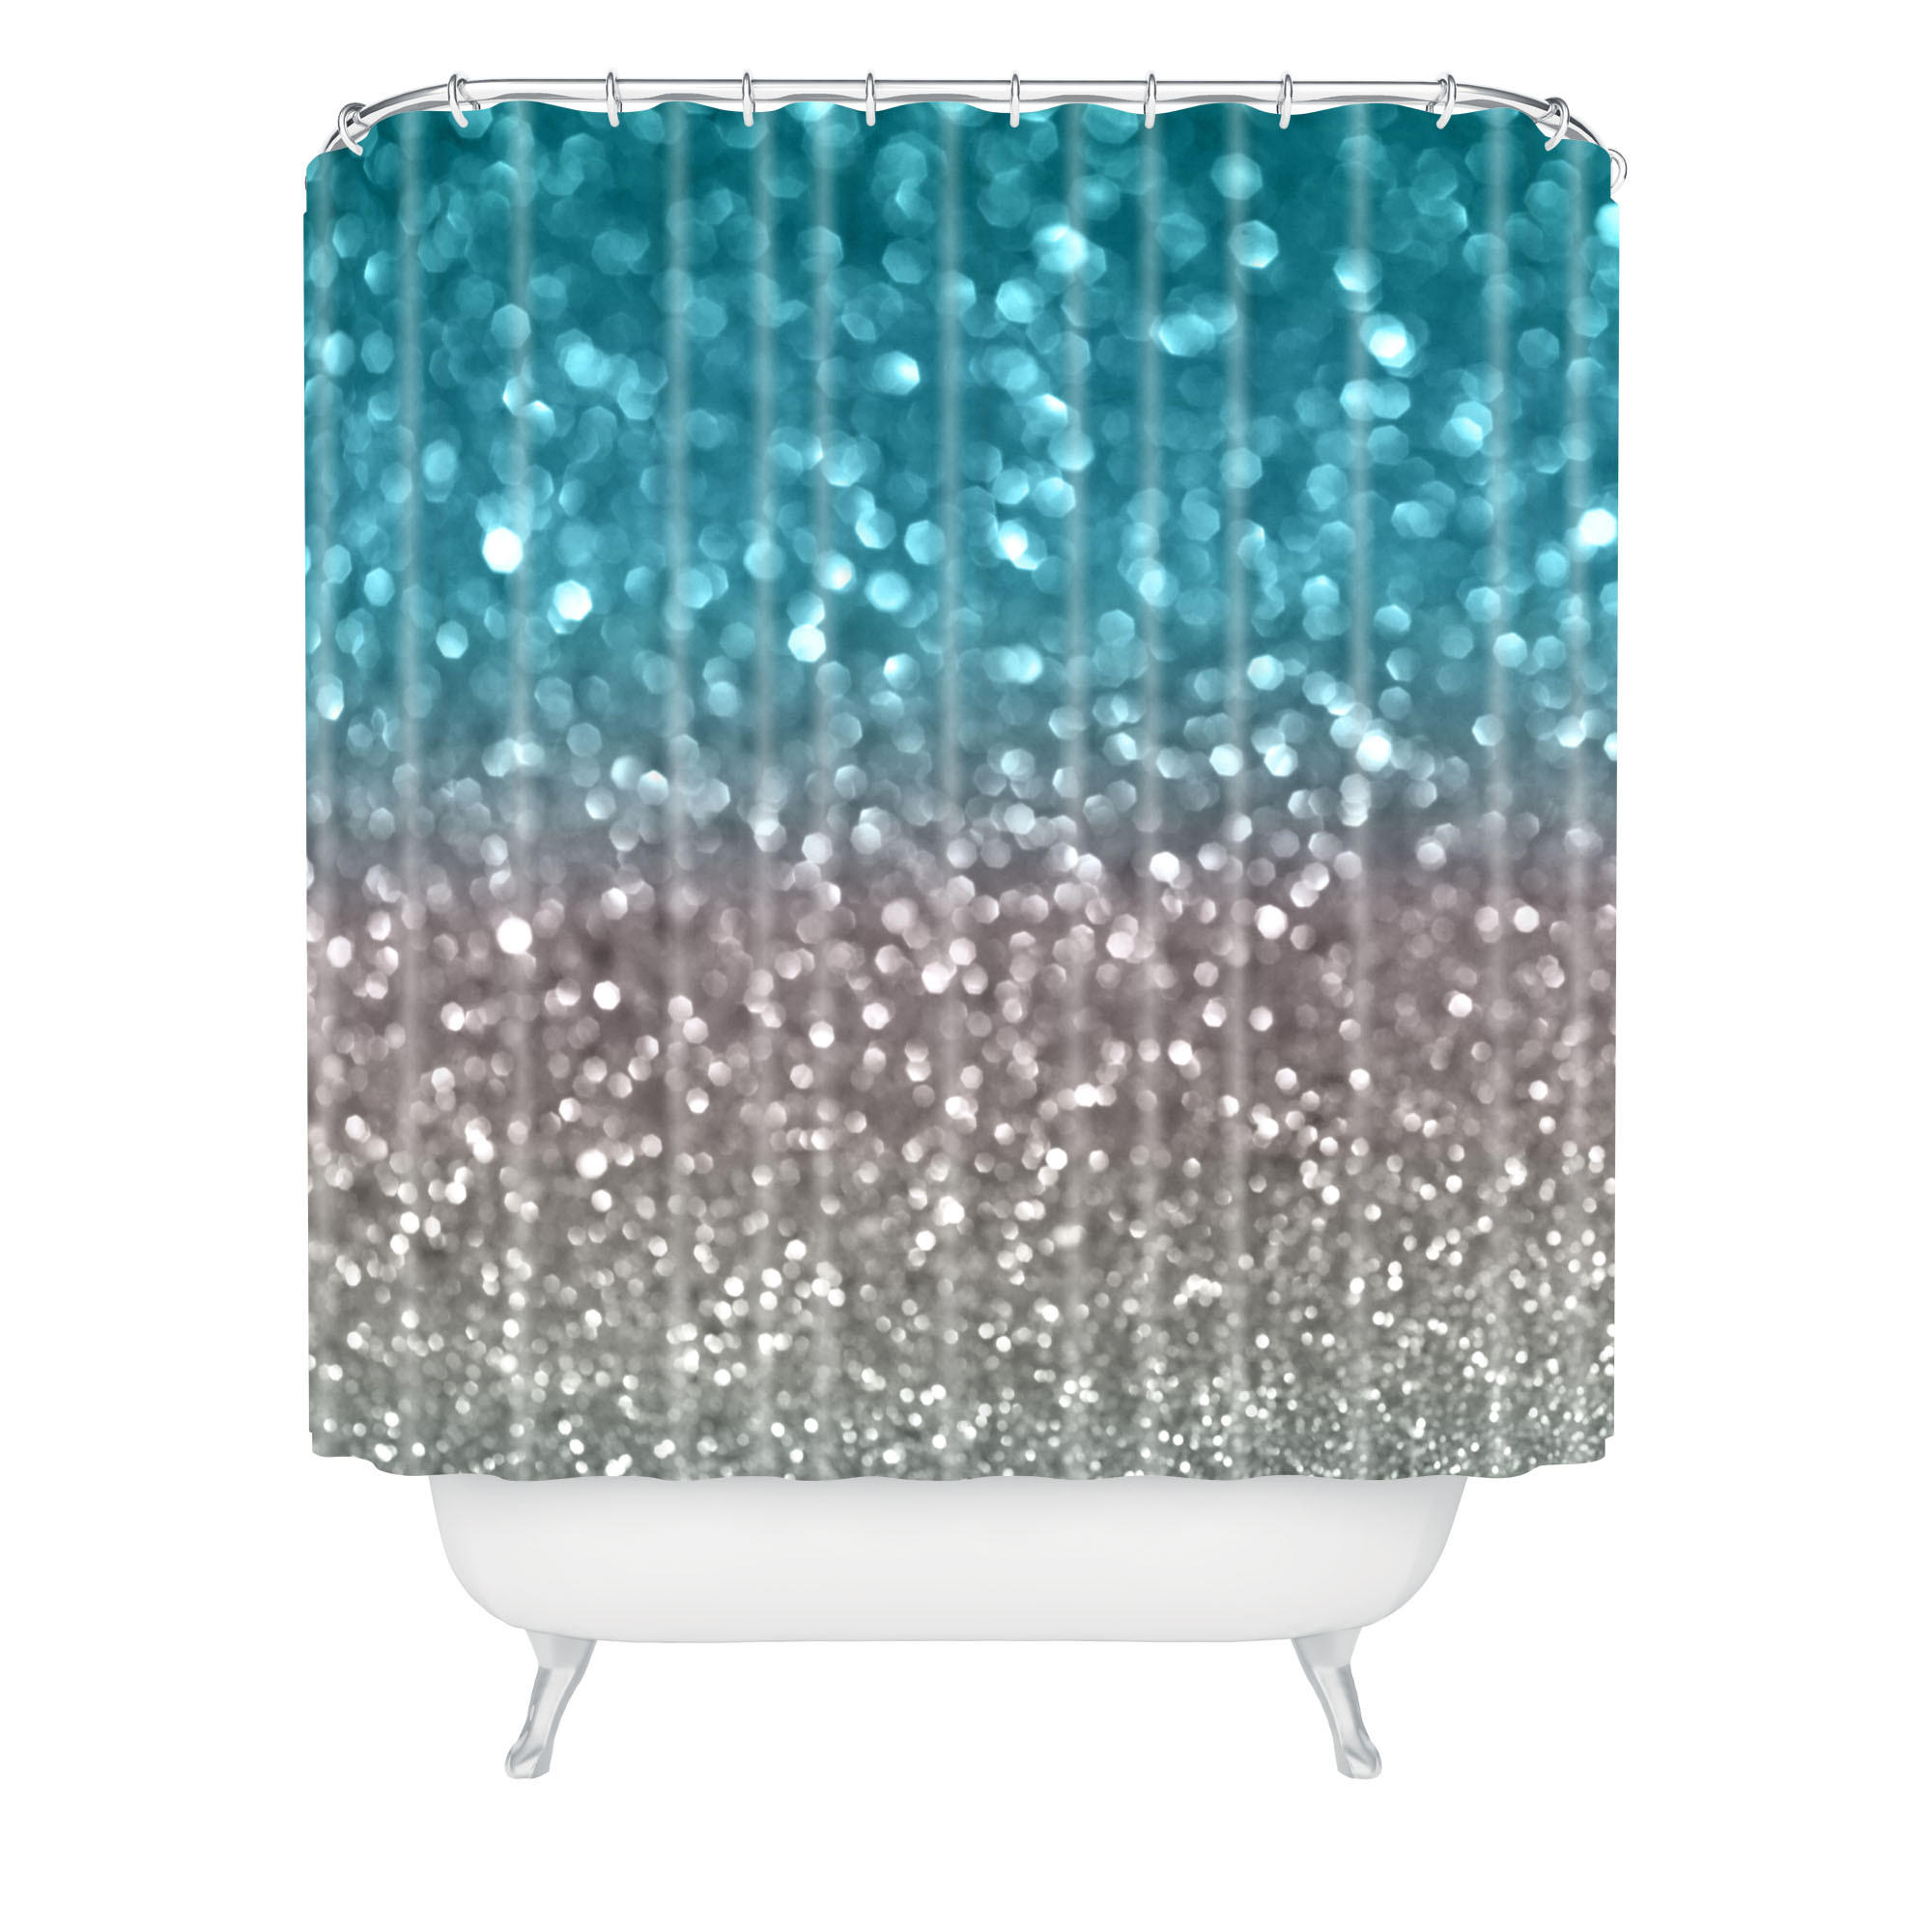 Lisa Argyropoulos Aqua And Gray Shower From DENY Designs DENY